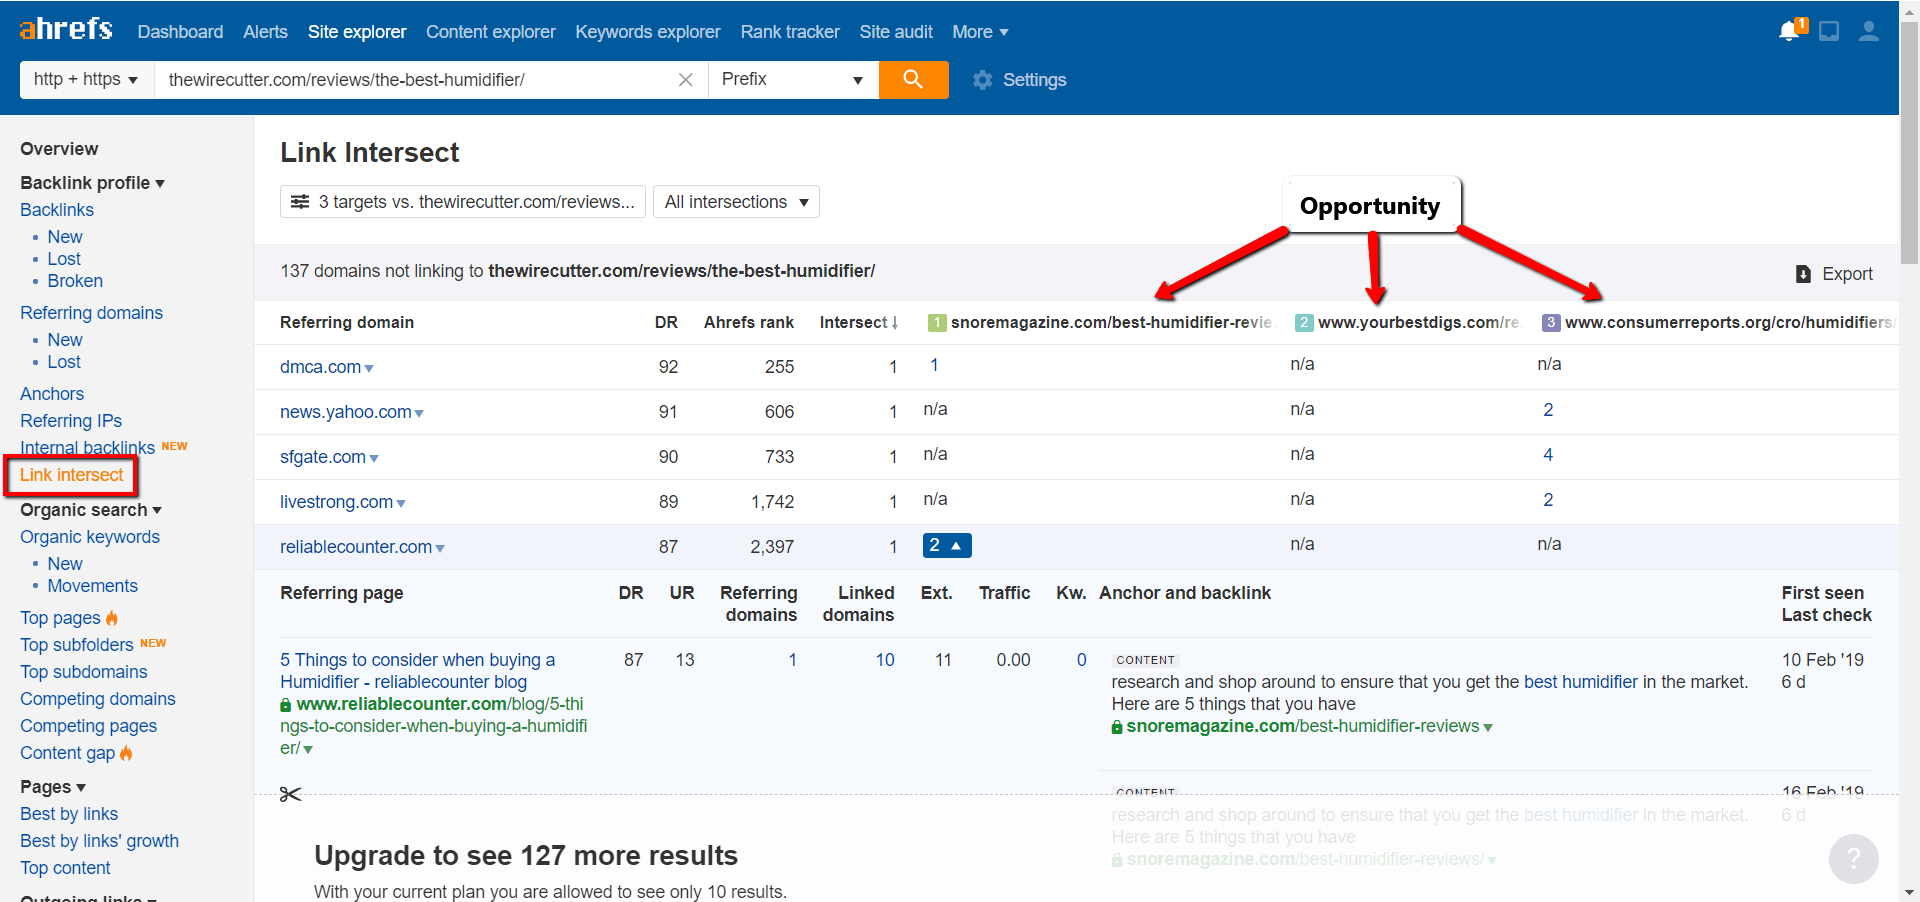 ahrefs link intersect competitors